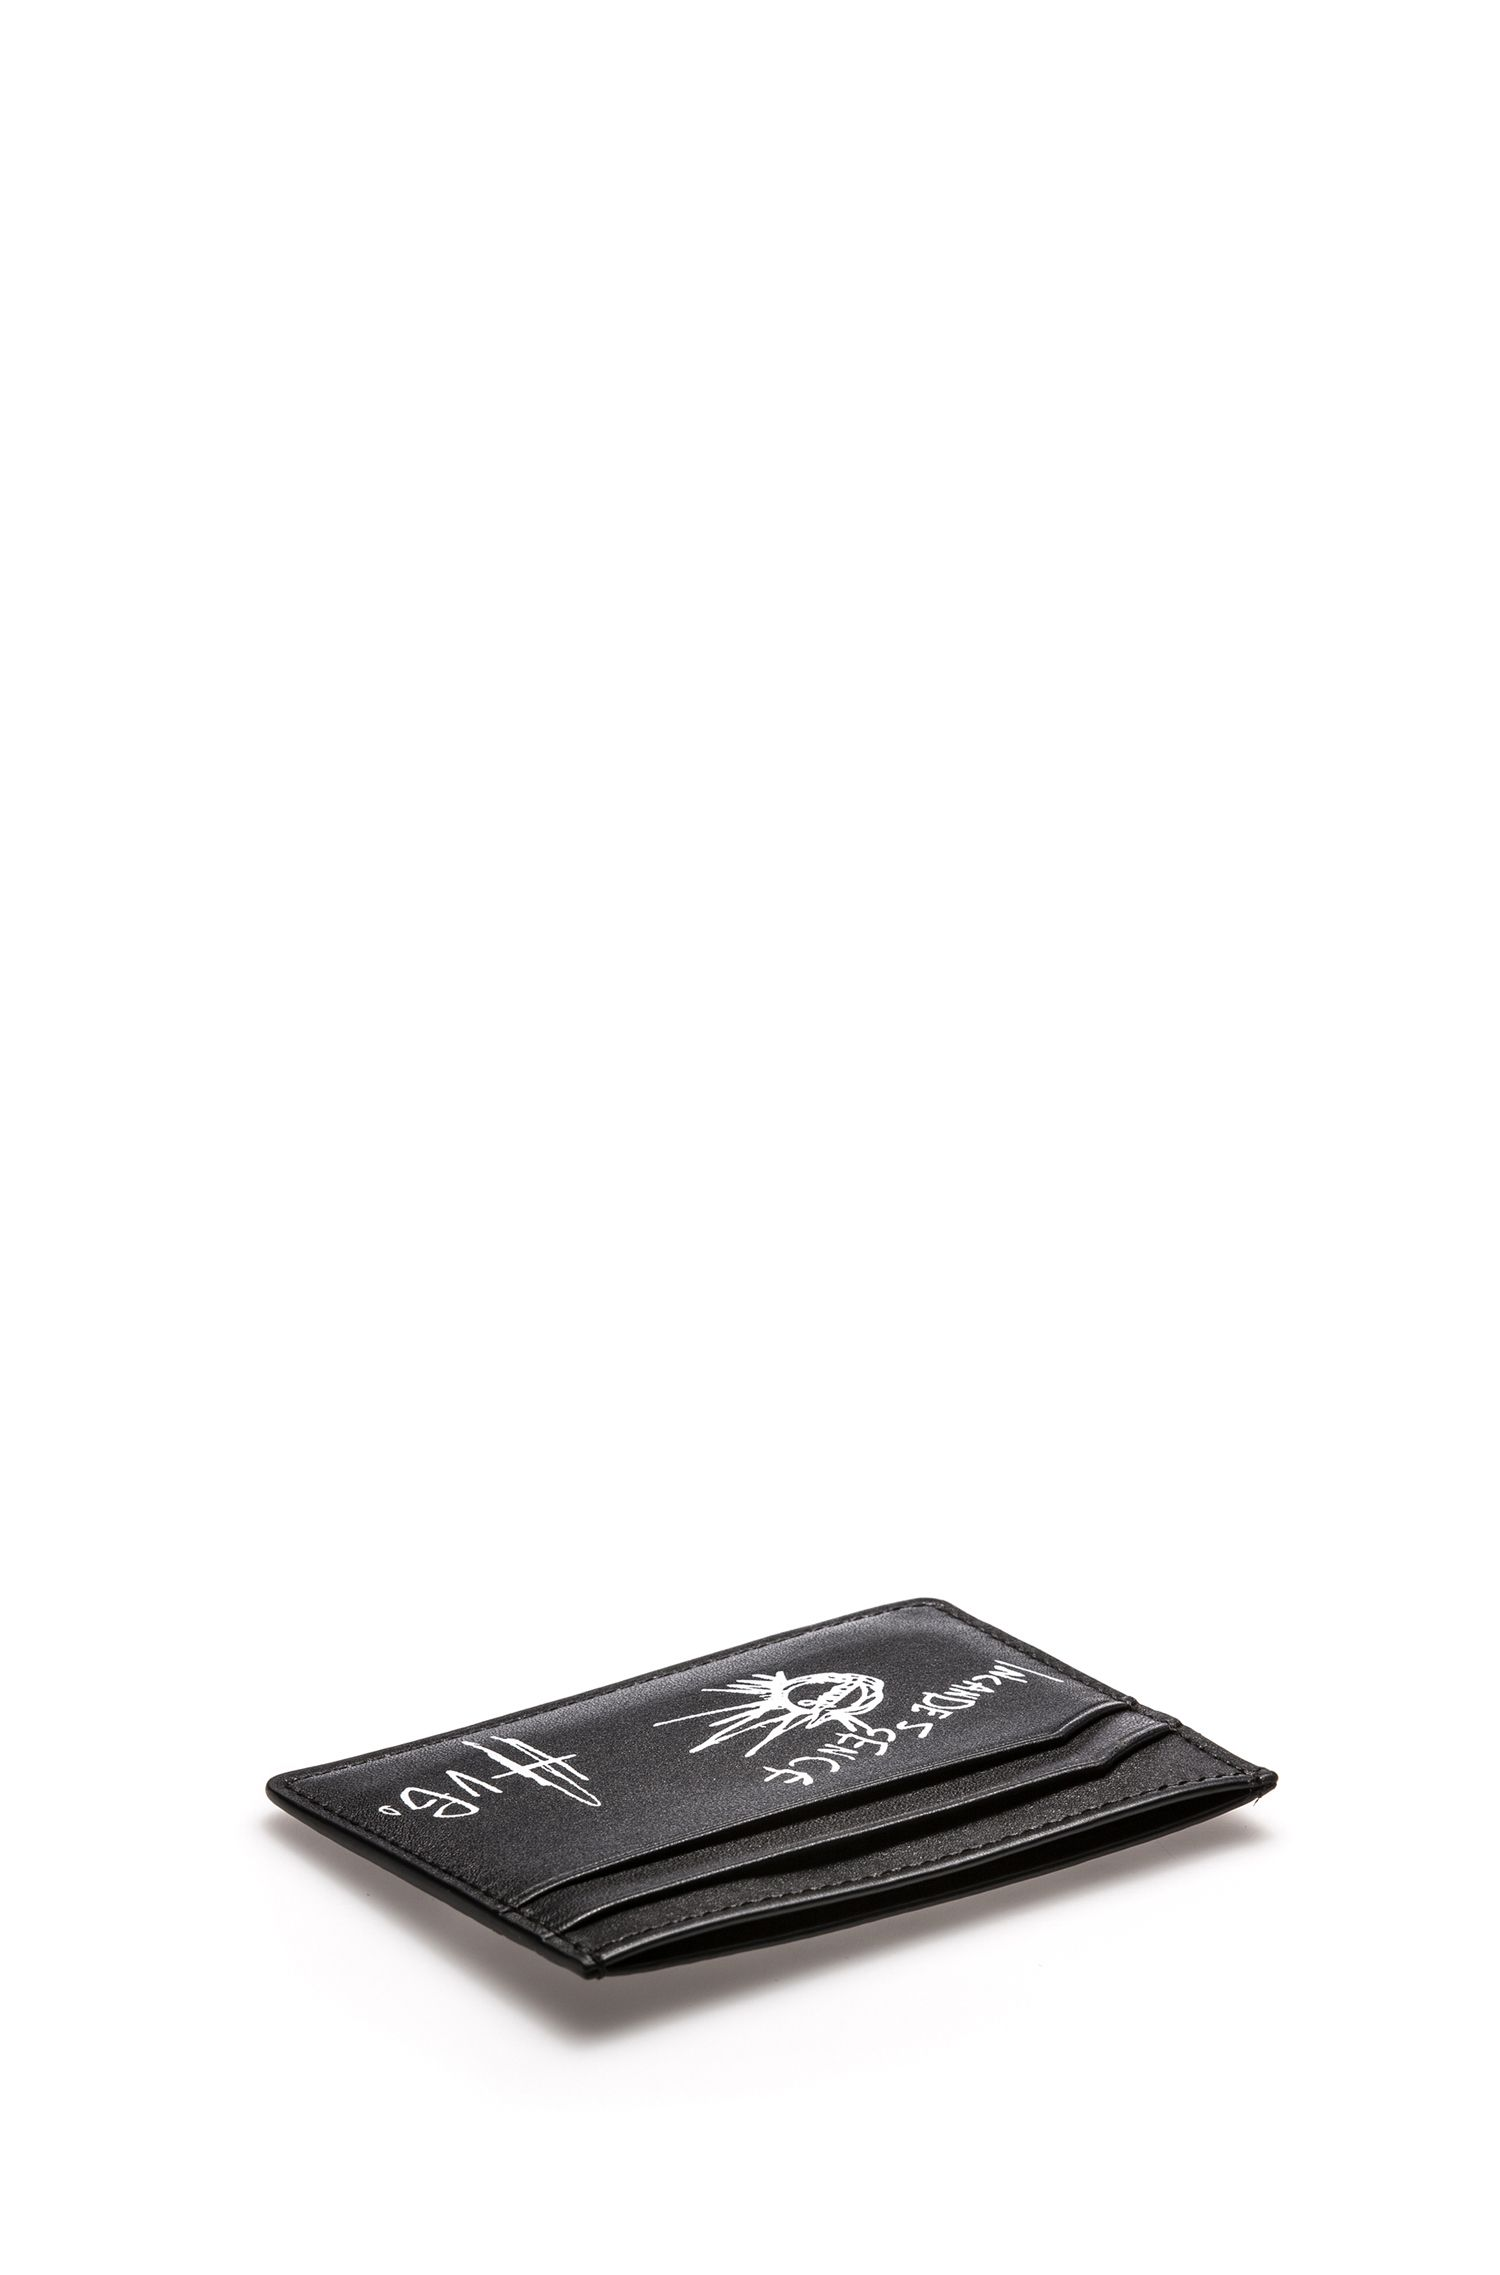 Graphic Print Leather Card Holder | Tribute P S Card